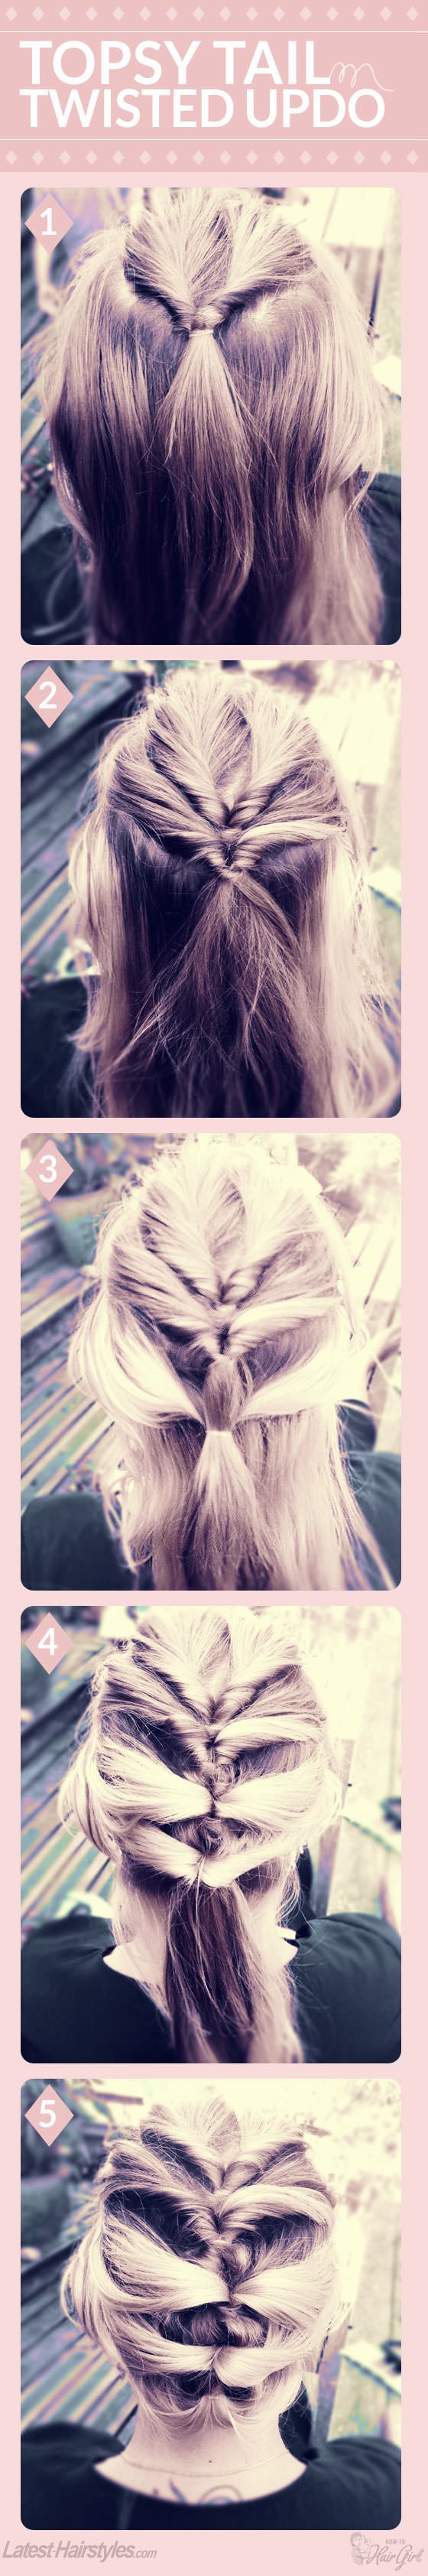 Topsy Tail-Inspired Twisted Updo Tutorial